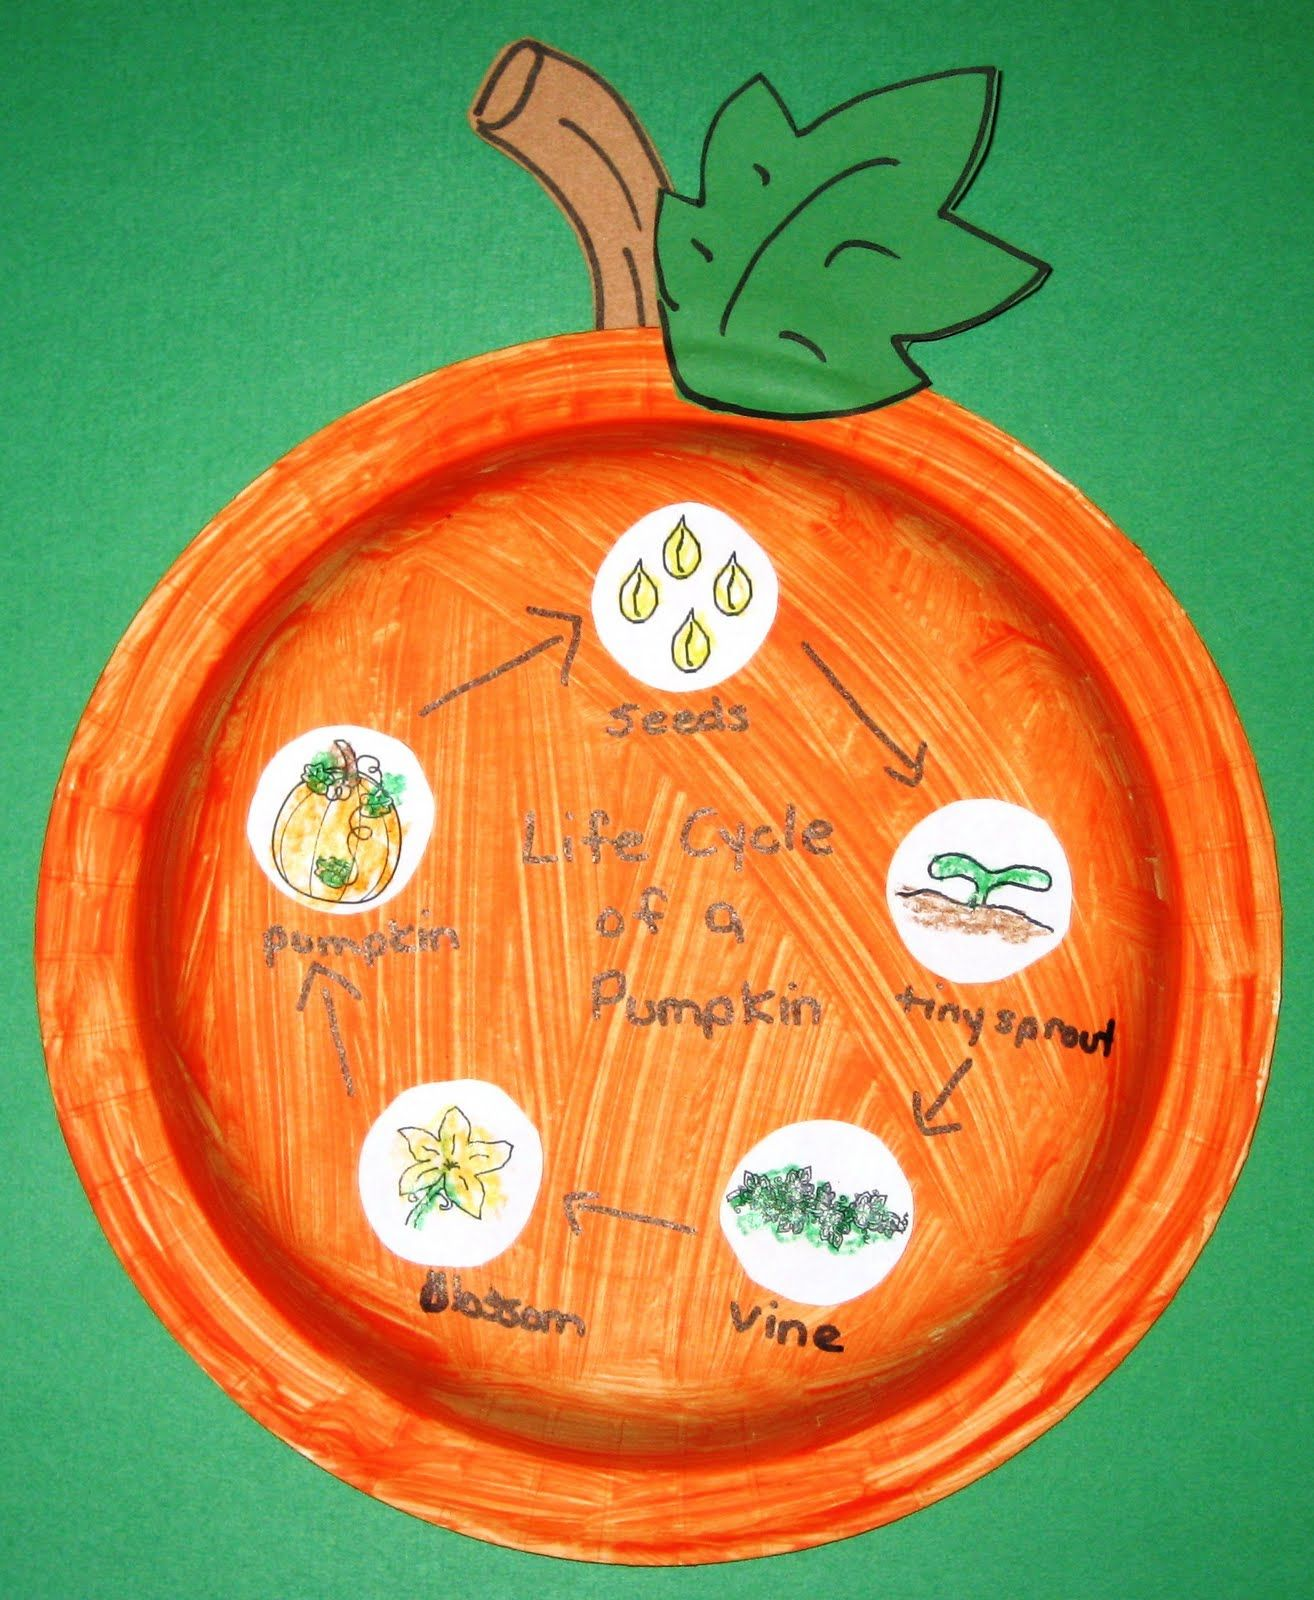 This Is A Neat Wear To Display The Pumpkin Life Cycle Jodi From The Clutter Free Classroom